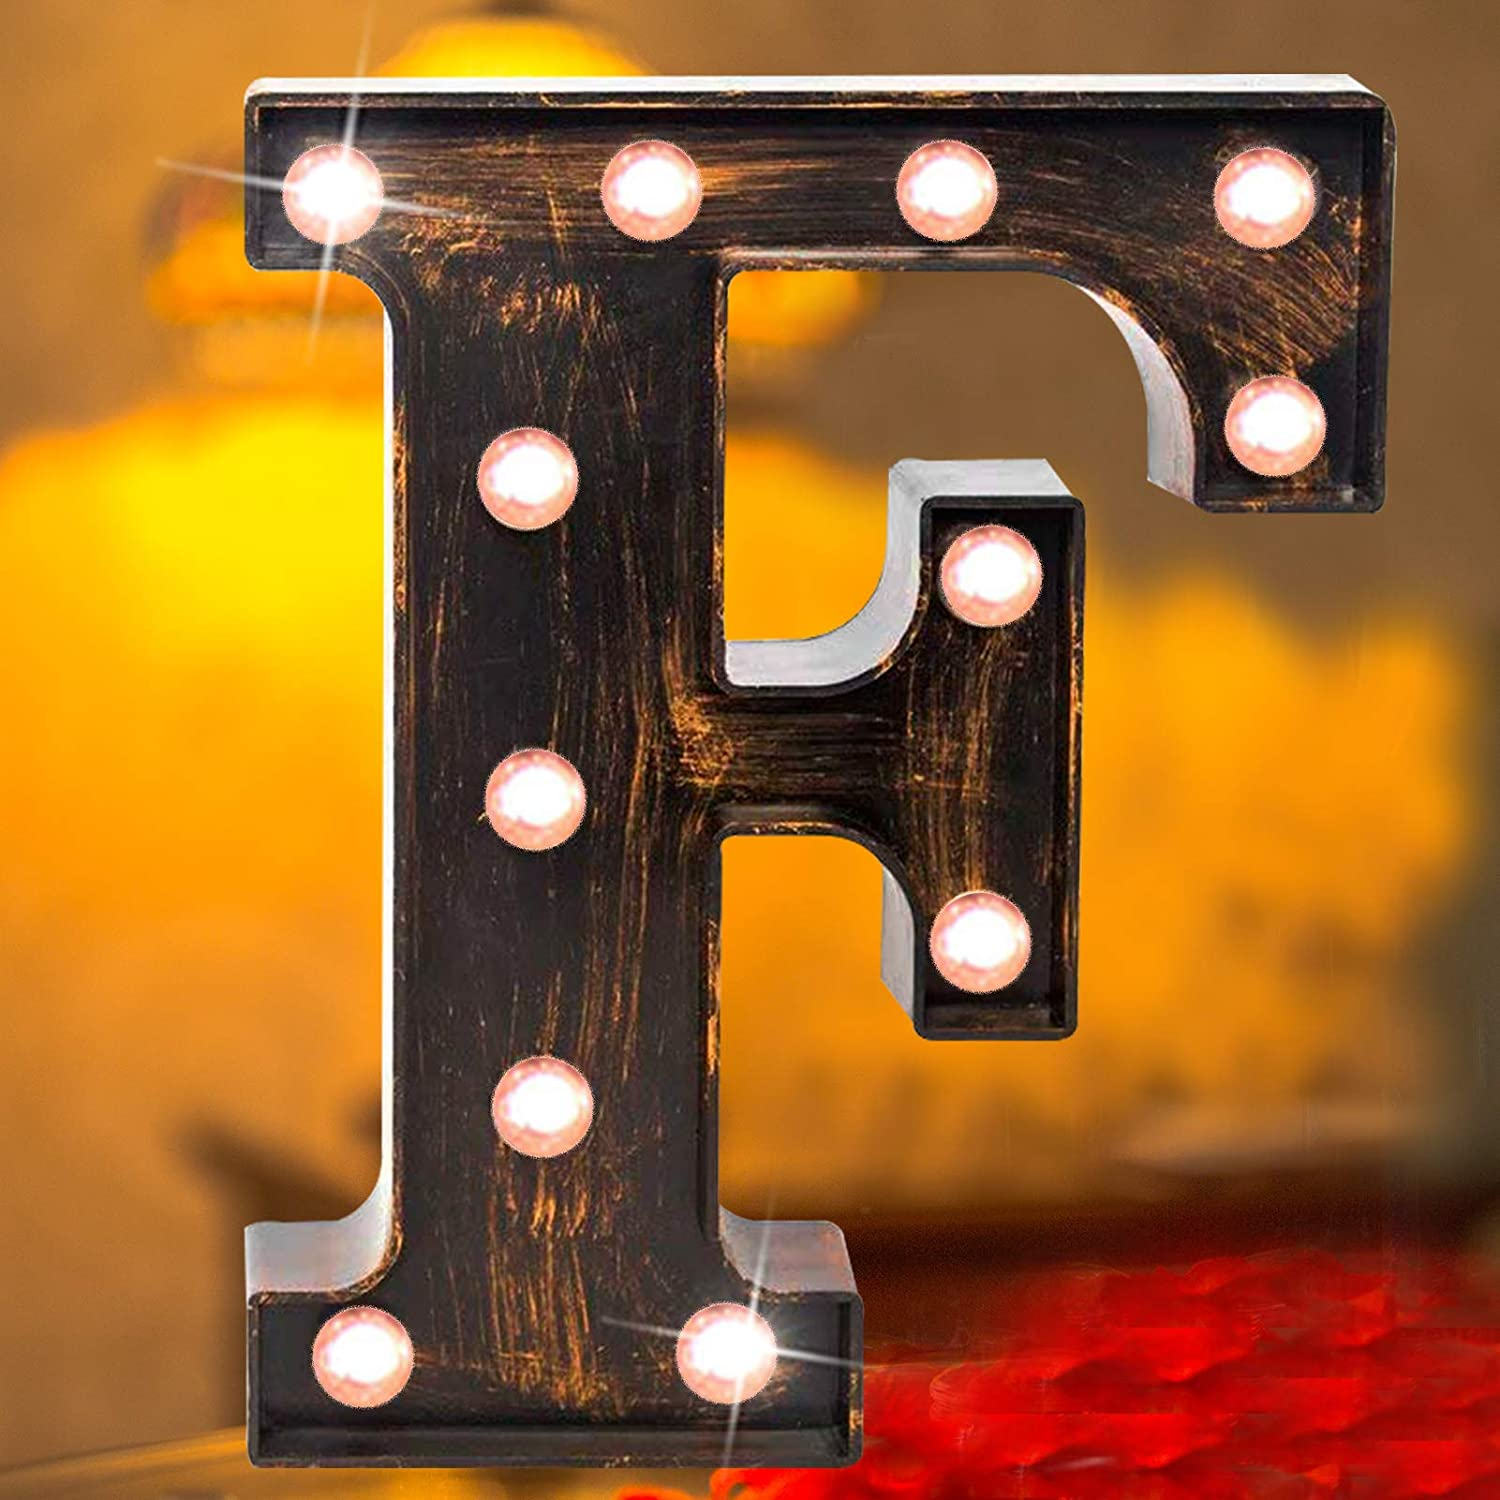 Vintage LED Marquee Letter Lights Light Up Industrial 26 Alphabet Name Signs Bar Cafe Initials Decor for Birthday Party Christmas Wedding Events(letter F)